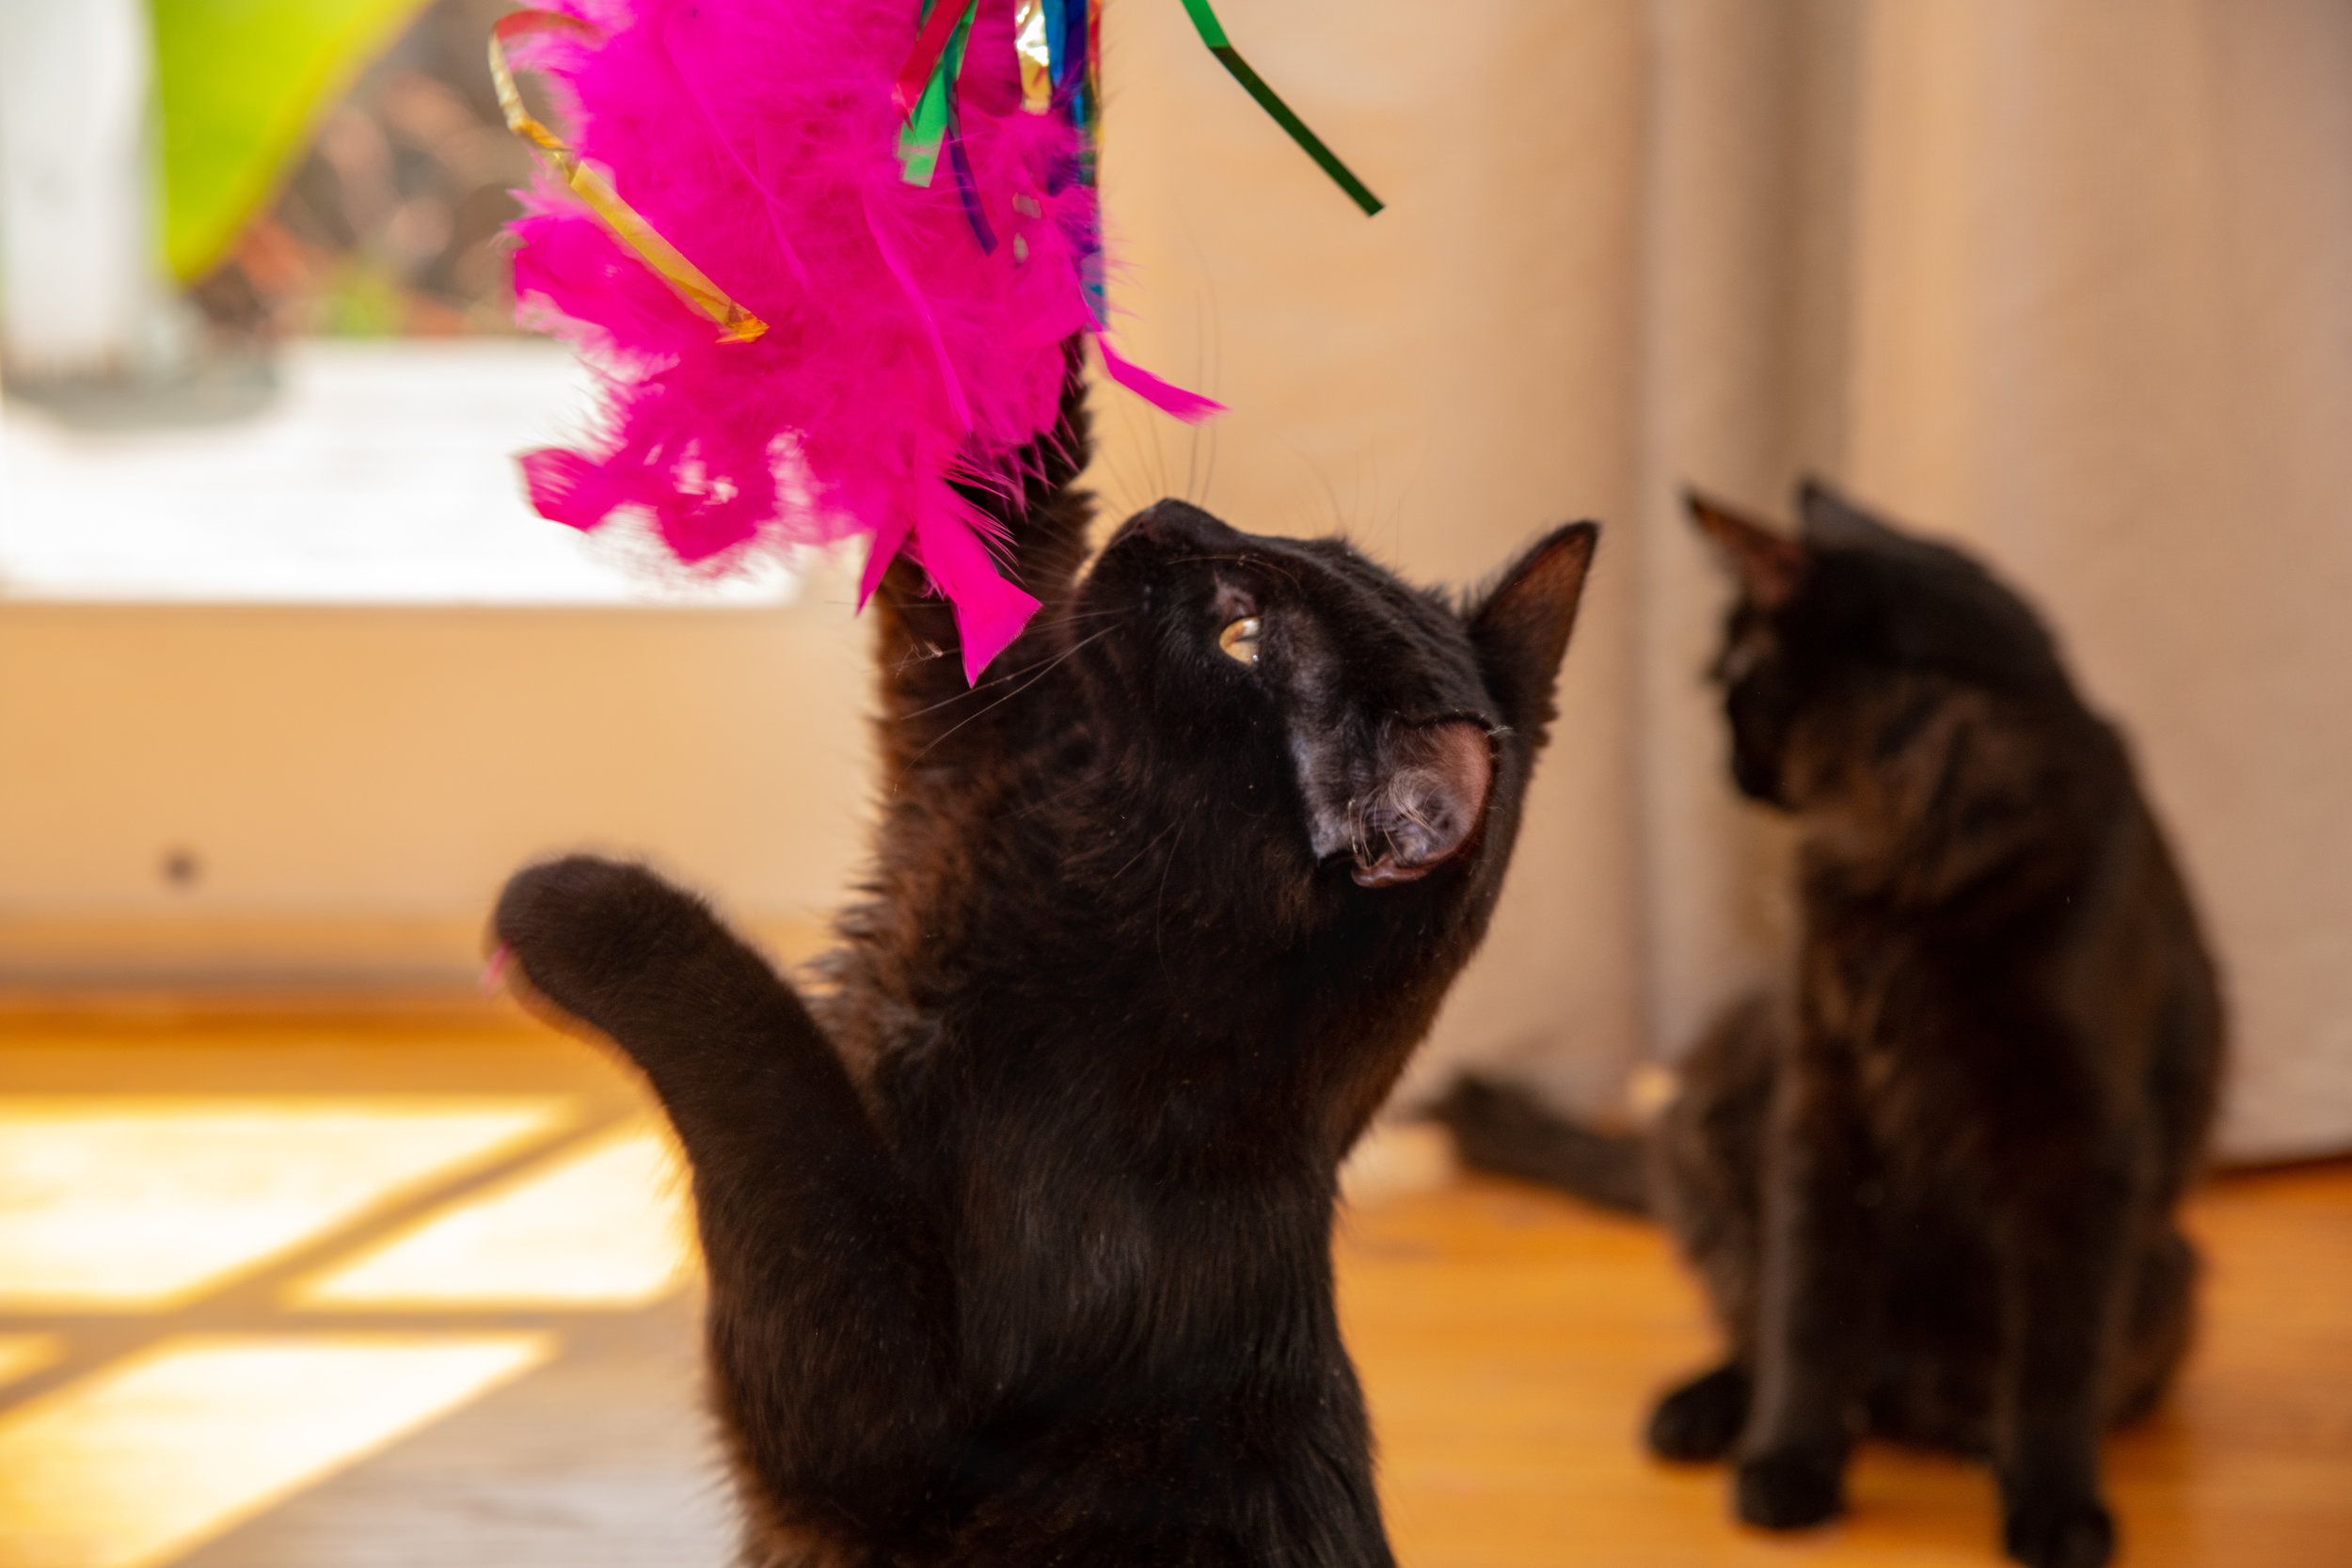 Violet & Vinnie - Violet and Vinnie are 6 month old bonded beautiful black kittens. They will cuddle and purr and play all day and sometimes you'll find yourself in a trance watching how beautiful they are. They are litter box trained and ready for their forever home.